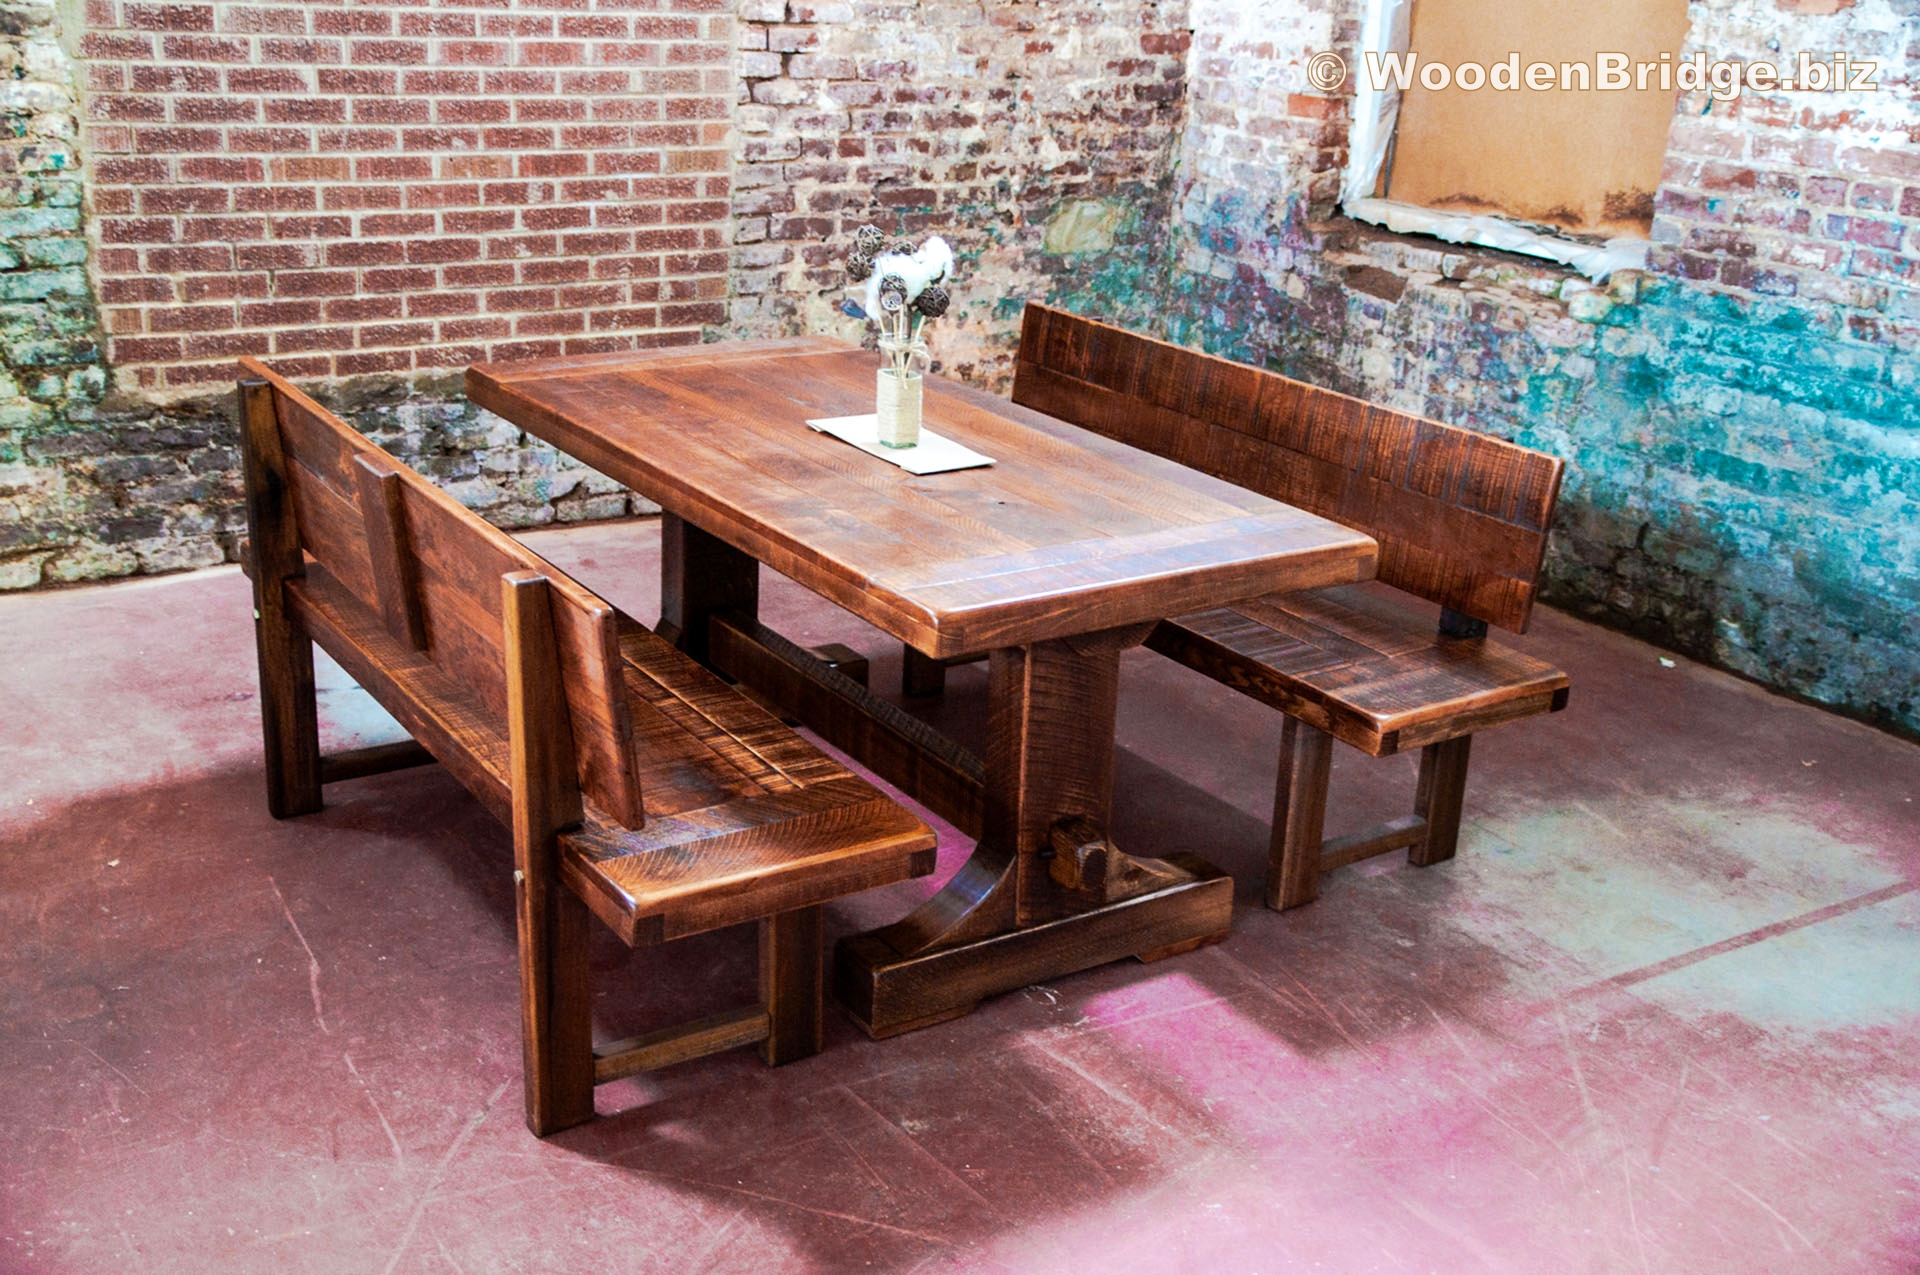 Reclaimed Wood Dining Table Ideas - 1920 x 1275